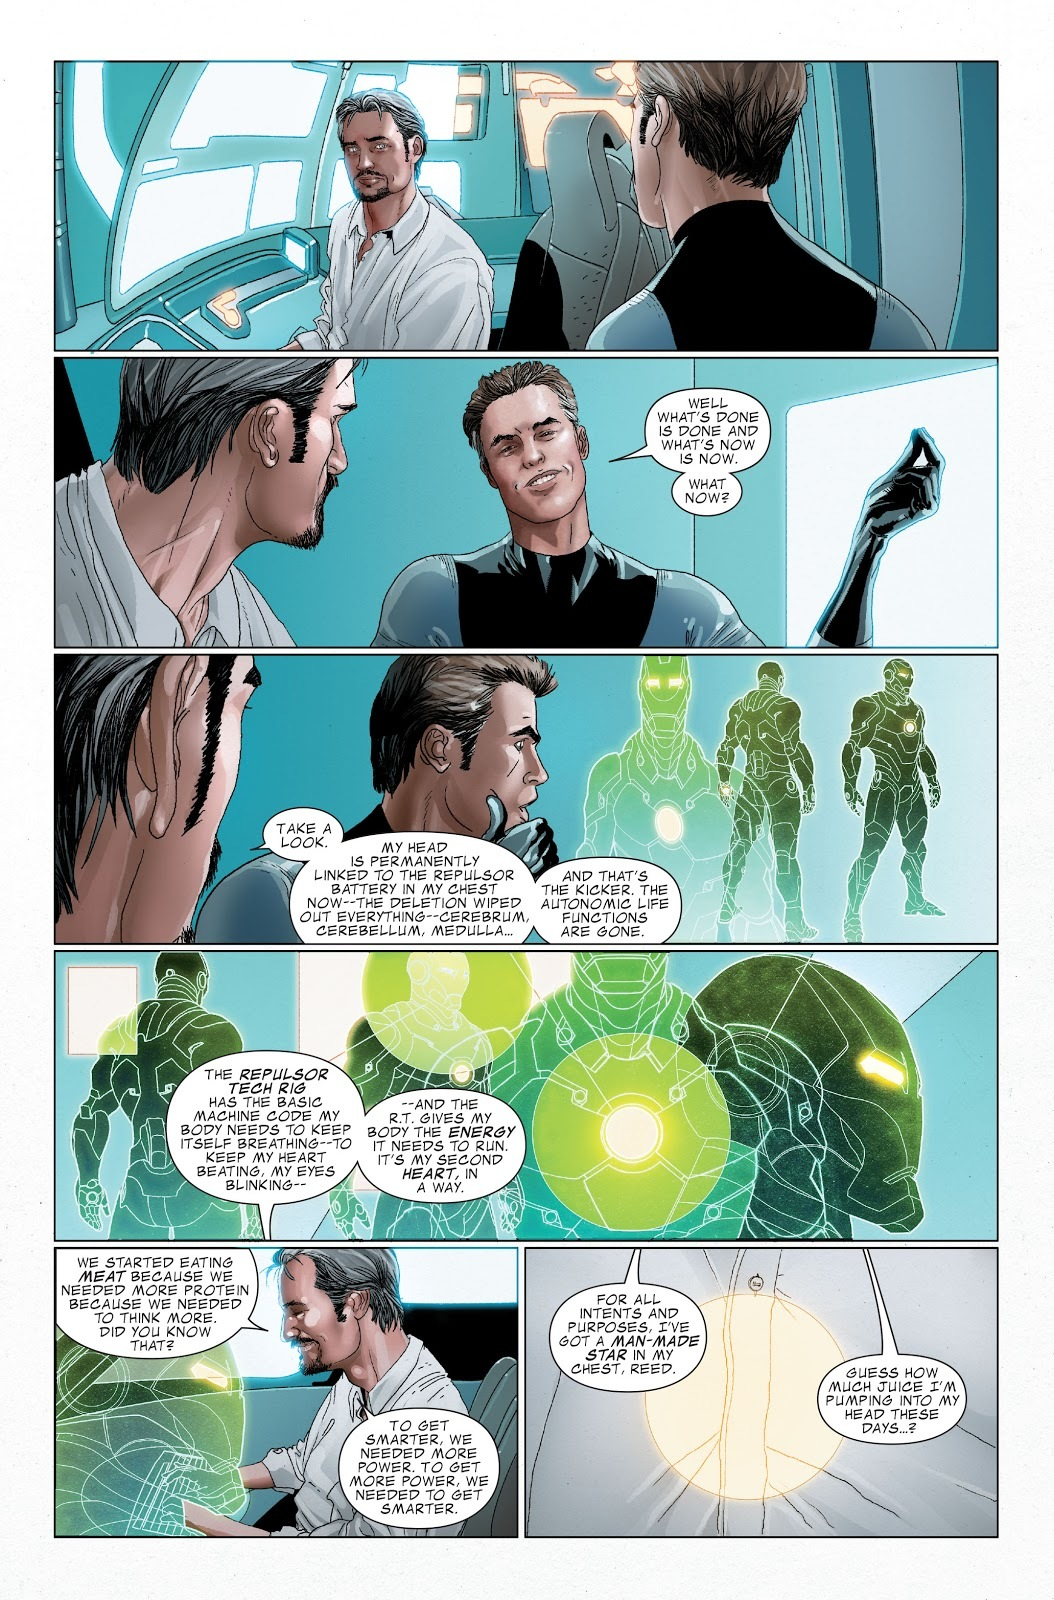 Iron Man compares the new Arc Reactor for the Bleeding Edge to a man-made Star. You might say this is hyperbole but...